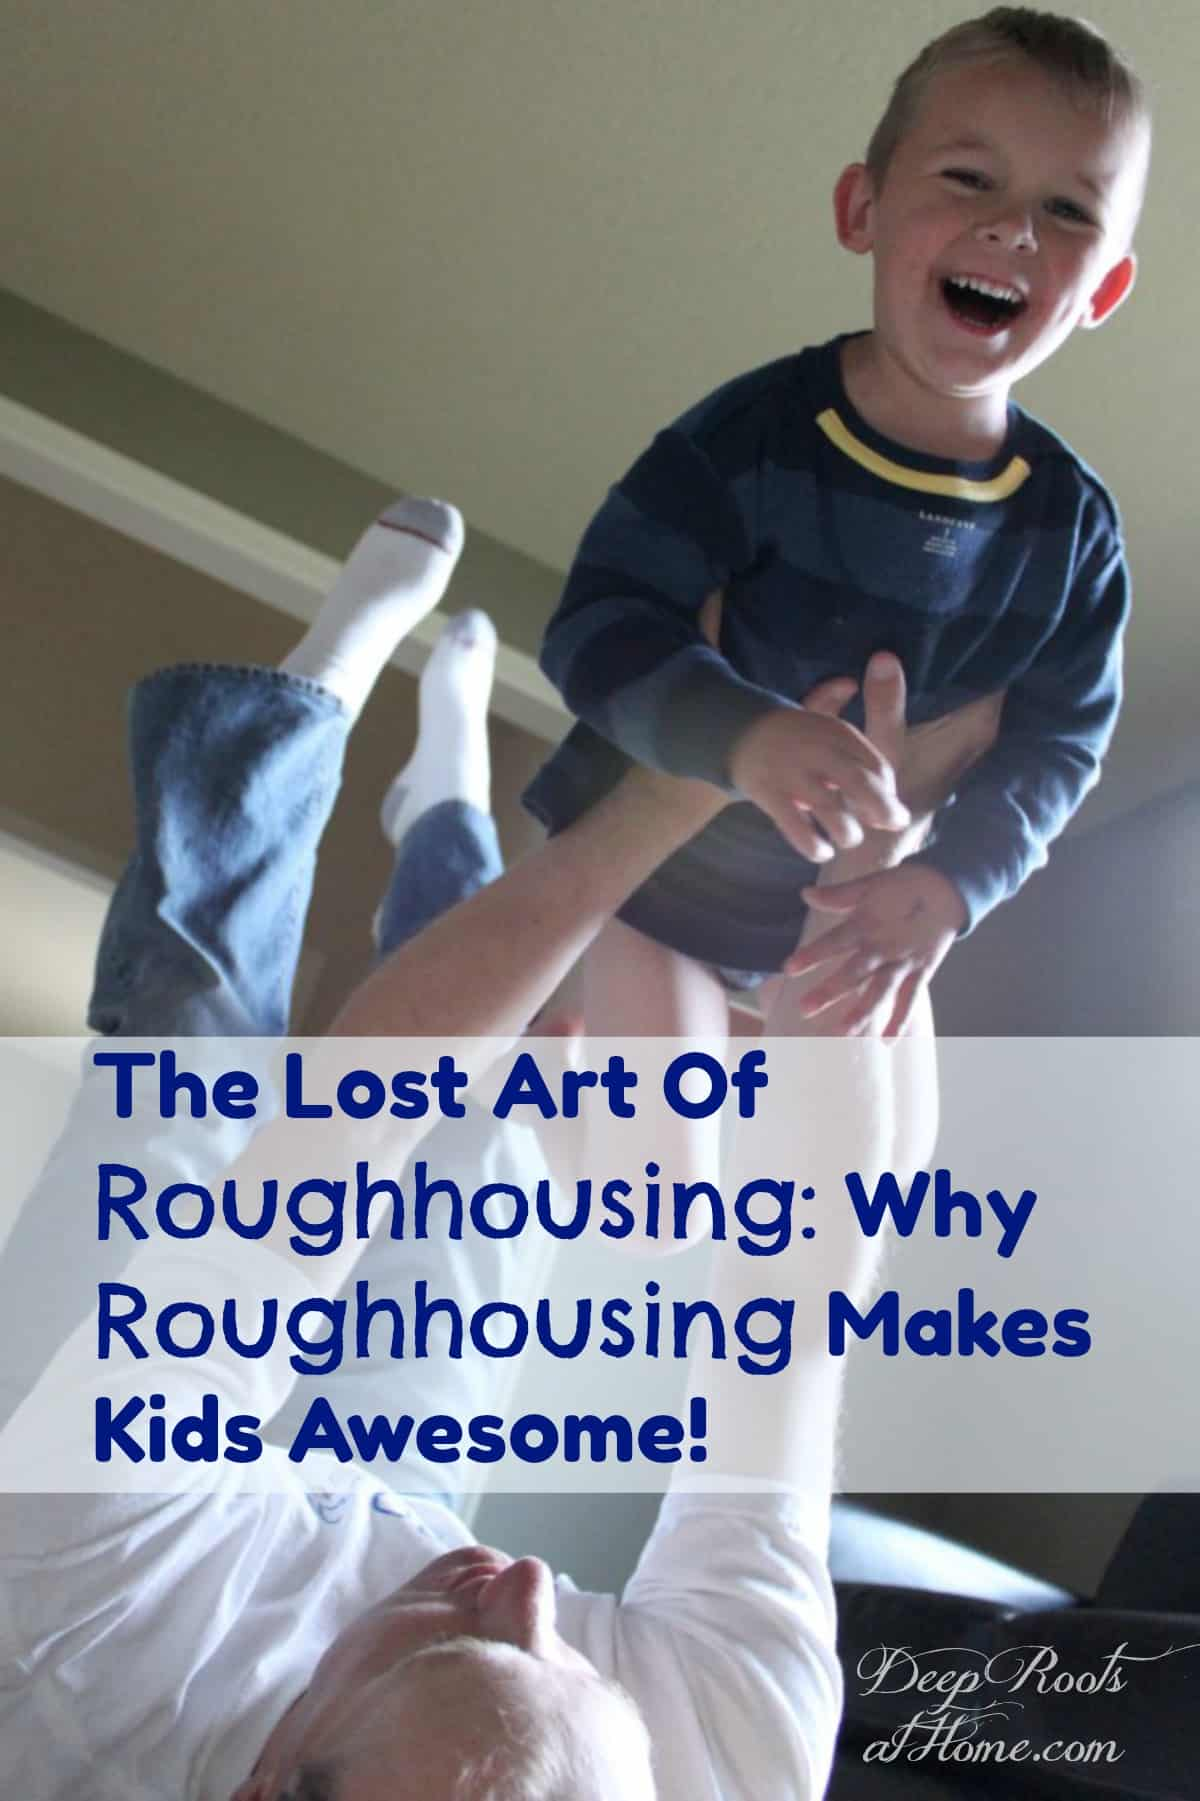 The Lost Art Of Roughhousing: Why Roughhousing Makes Kids Awesome. Help your child develop a resilient spirit and adapt to unpredictable situations. #kids #child #childhood  #parenting #entertainment #daddy #family #happy #fatherhood #playground  #motherhood #relationships #healthy #boys #children #jokes #funny #games #fitness #familygoals